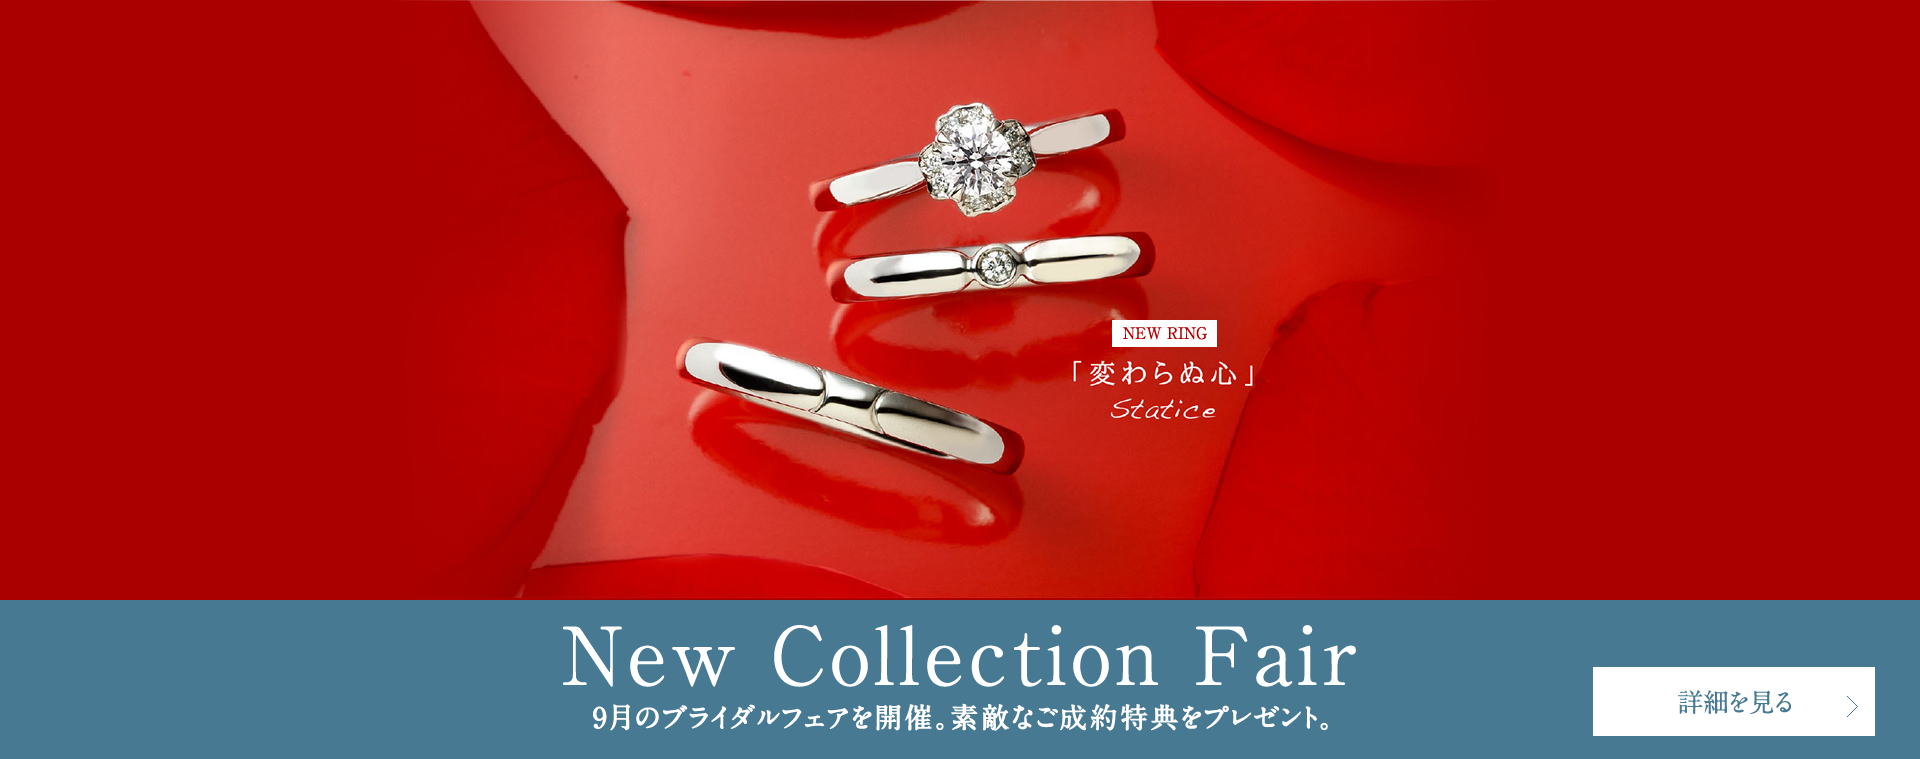 New Collection Fair